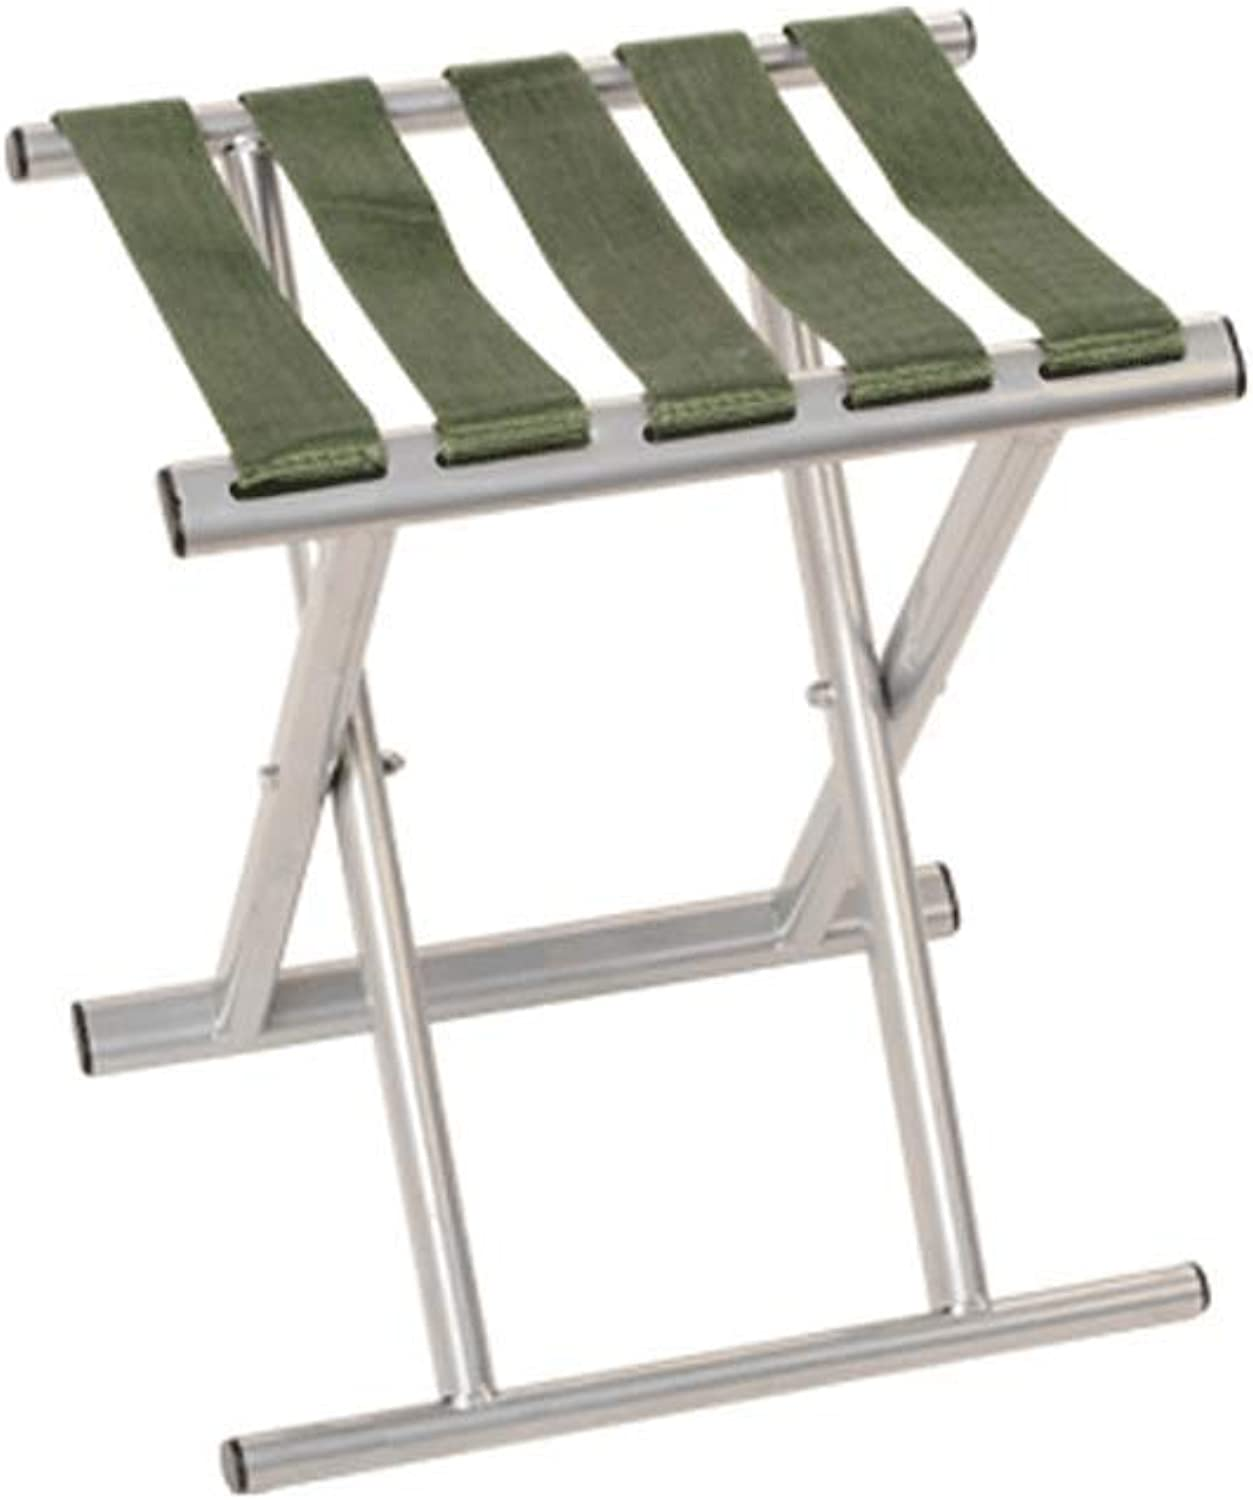 SCJ Folding Chairs Portable Folding Camping Stool,Metal, Thick, Folding, Portable Outdoor, Fishing, Climbing (color   White)